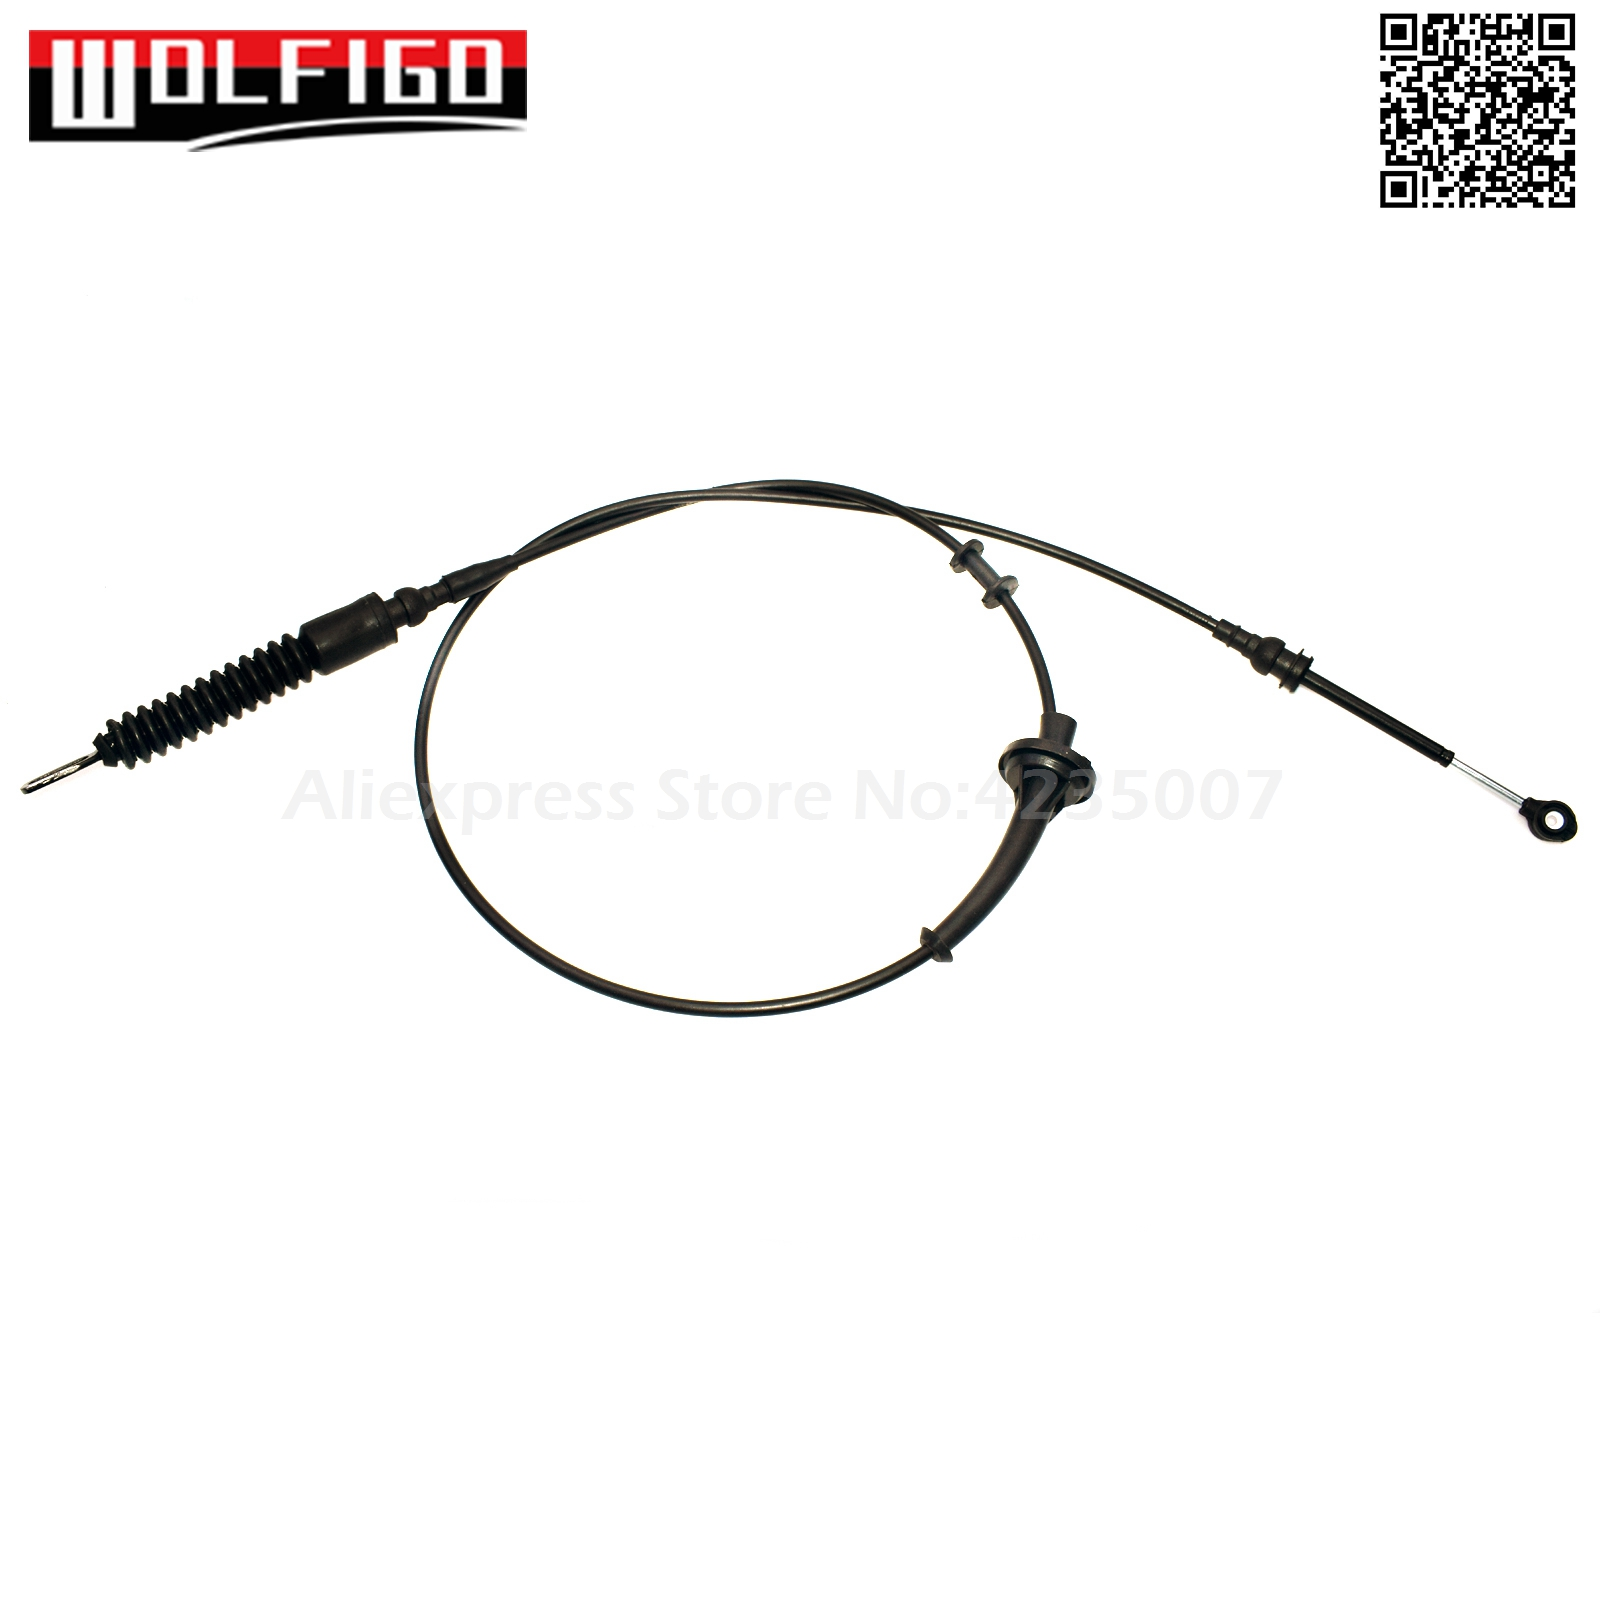 labwork Transmission Shift Control Cable fit for Ford Crown Victoria 1996-2002 F8AZ7E395BA